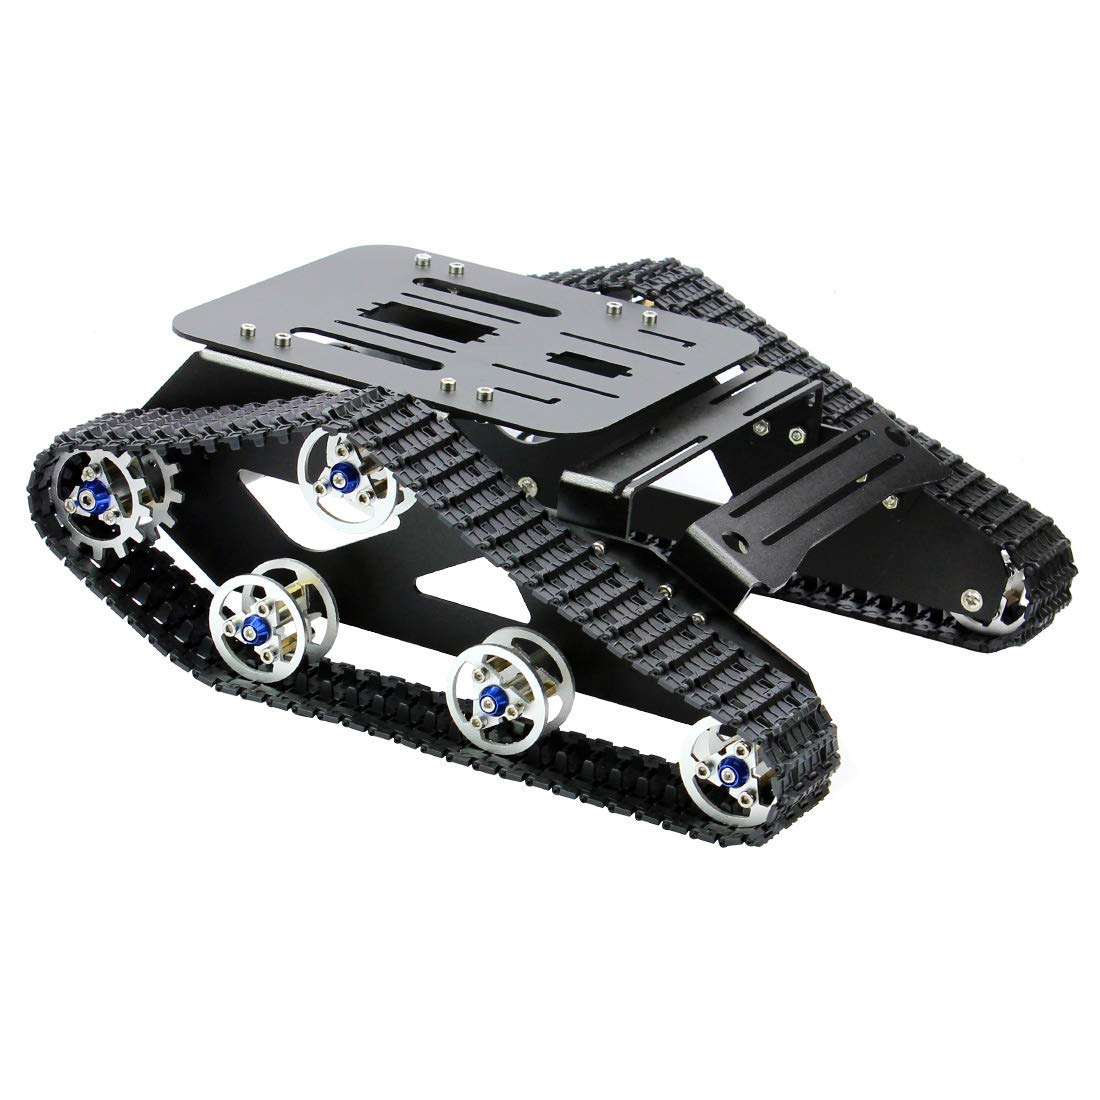 Smart Car Platform Tracked Robot Metal Aluminium Tank Chassis with Powerful Dual DC 12V Motor for DIY STEM Education Assembled